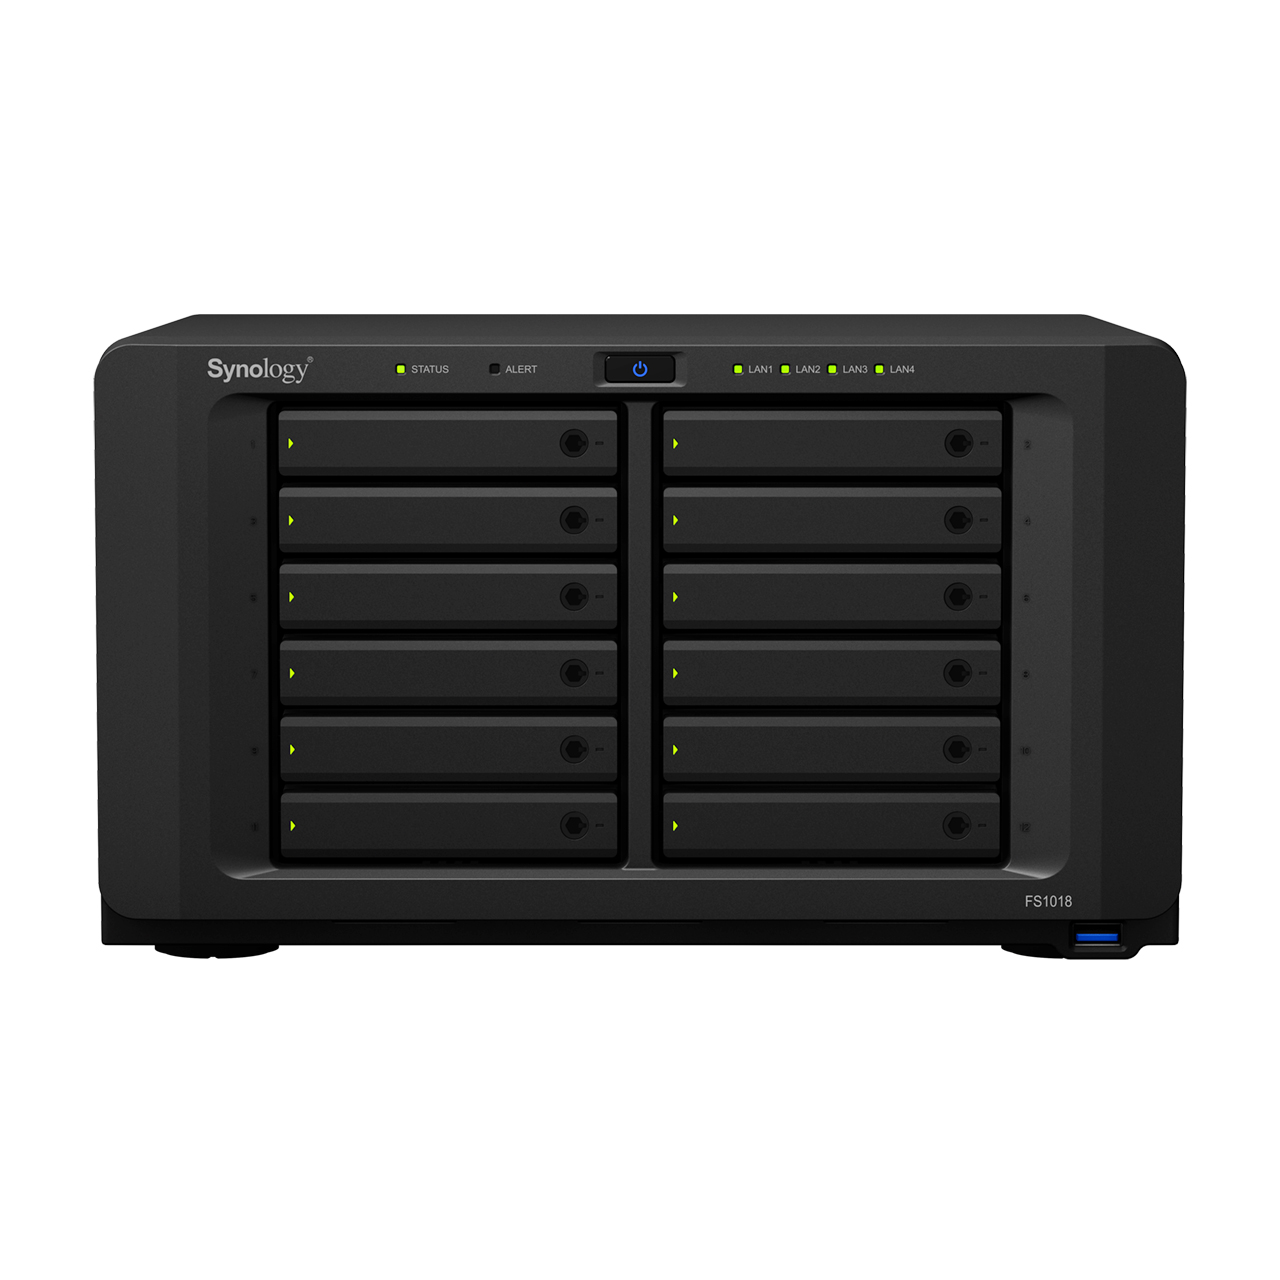 diskstation, ds1218, flashstation, fs1018, synology, nas, network attached storage